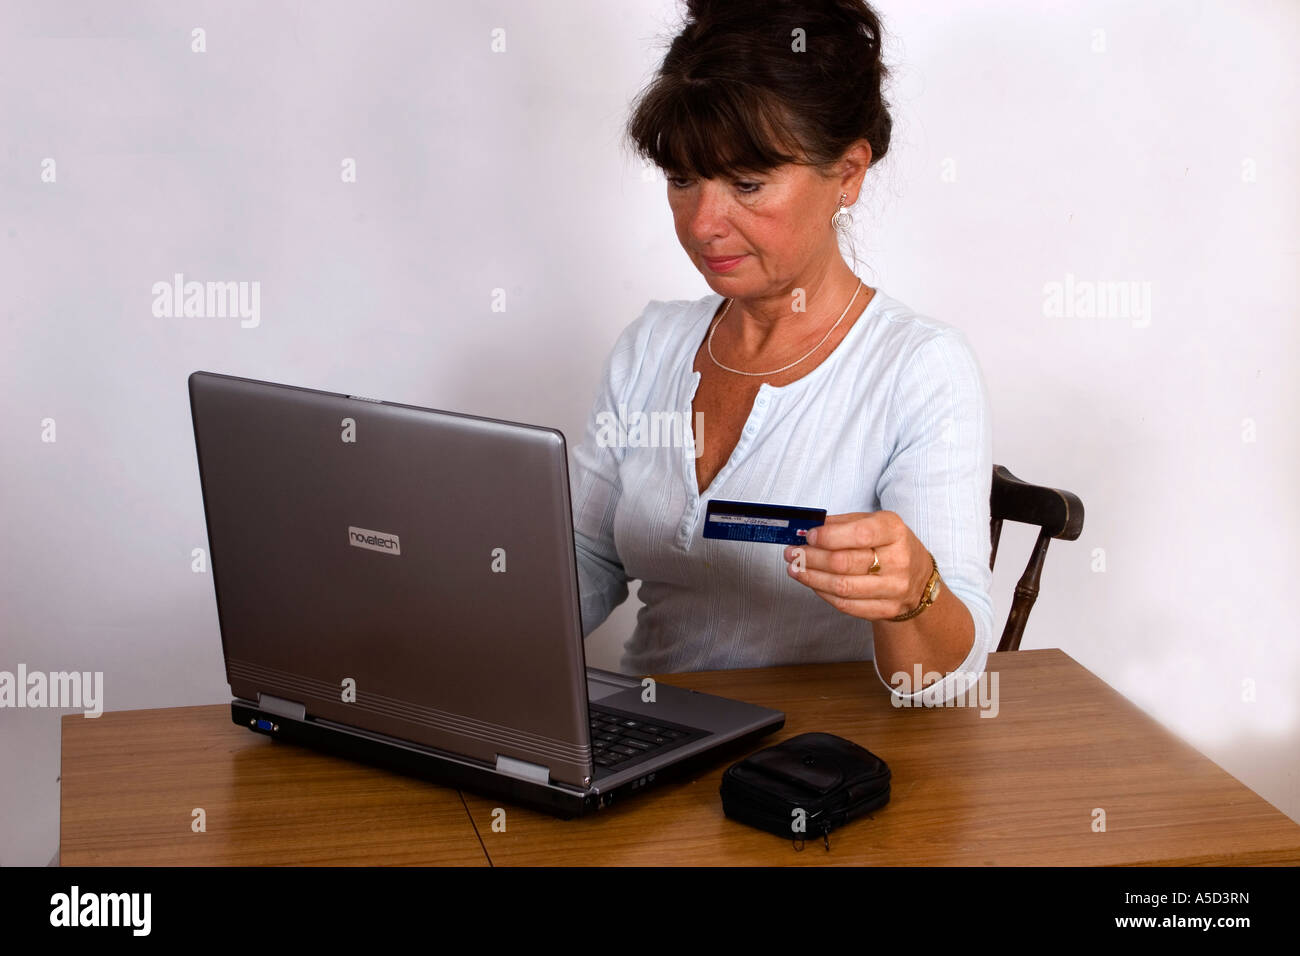 Middle aged woman on laptop computer holding credit or debit card in hand - Stock Image